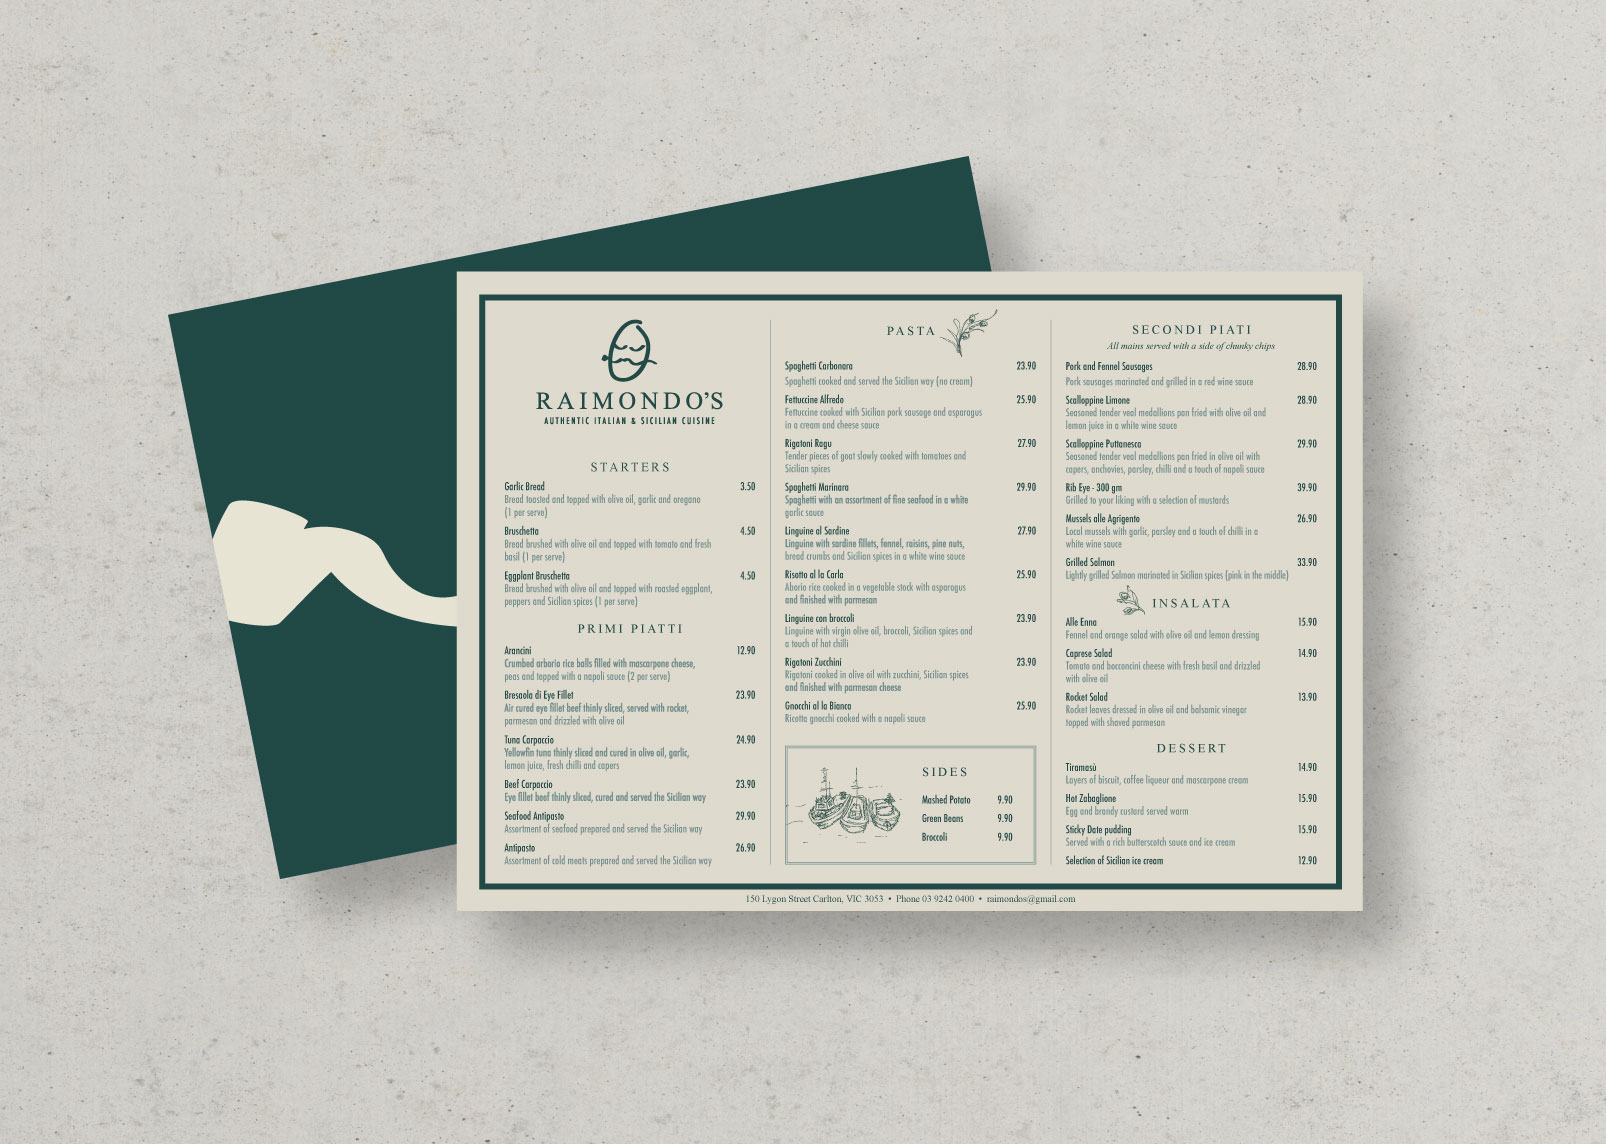 Additional illustrations were created for the menus to hint at the Sicilian influence.